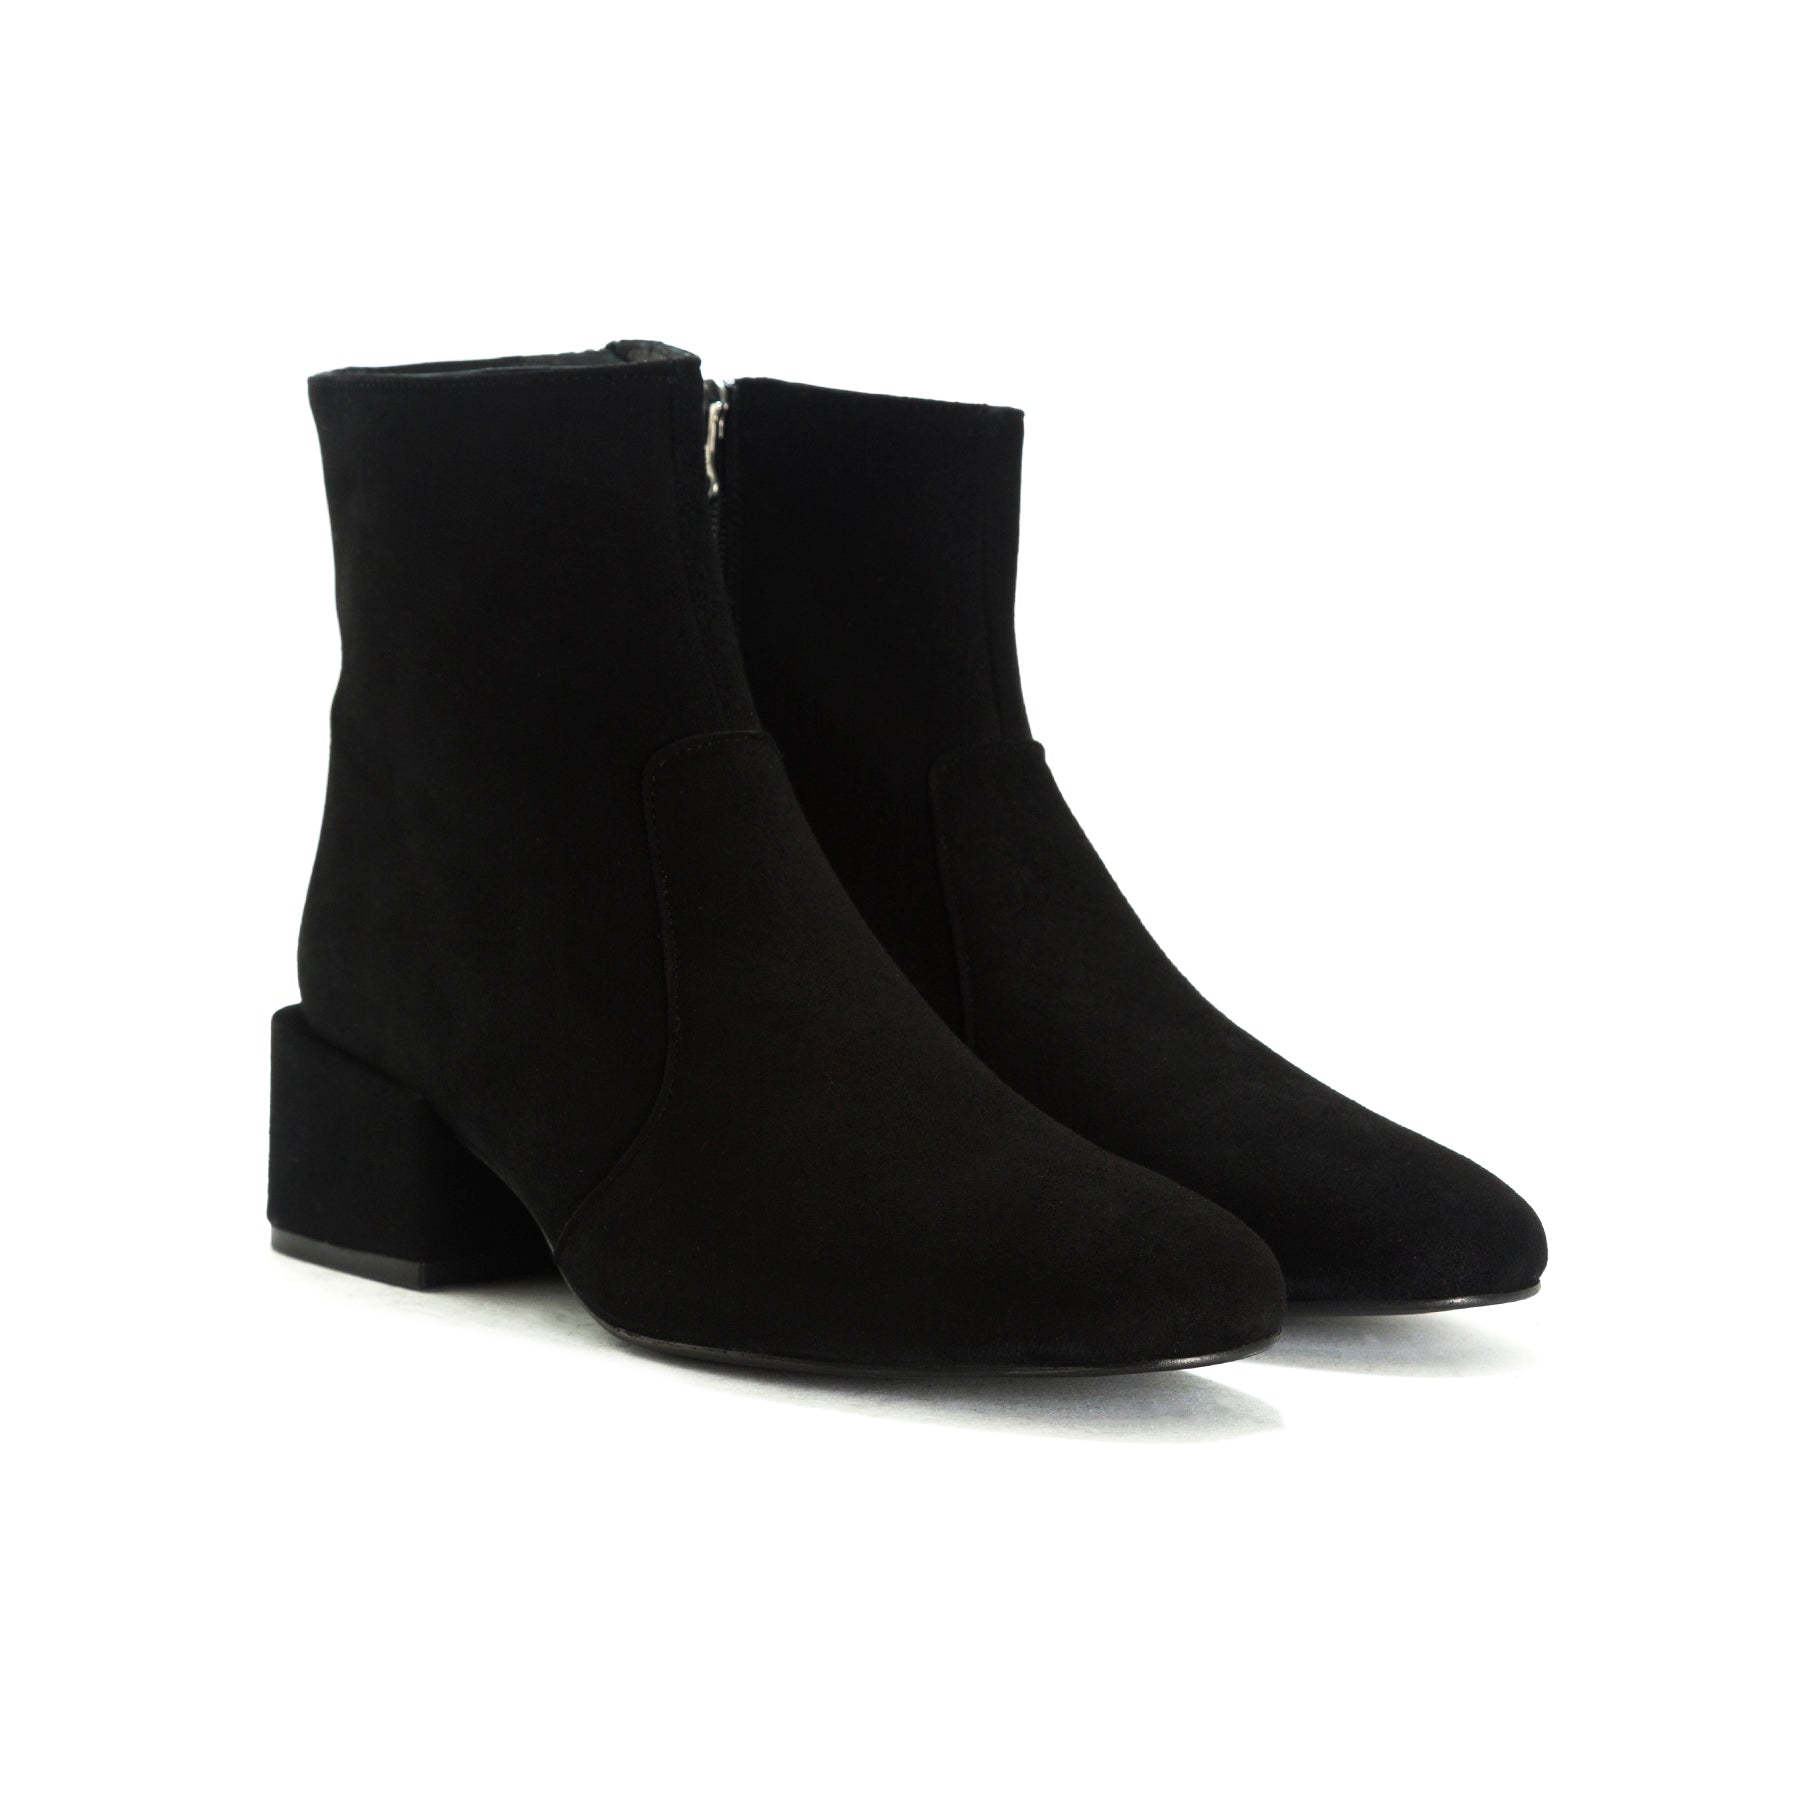 Thassos Black Suede Ankle Boots